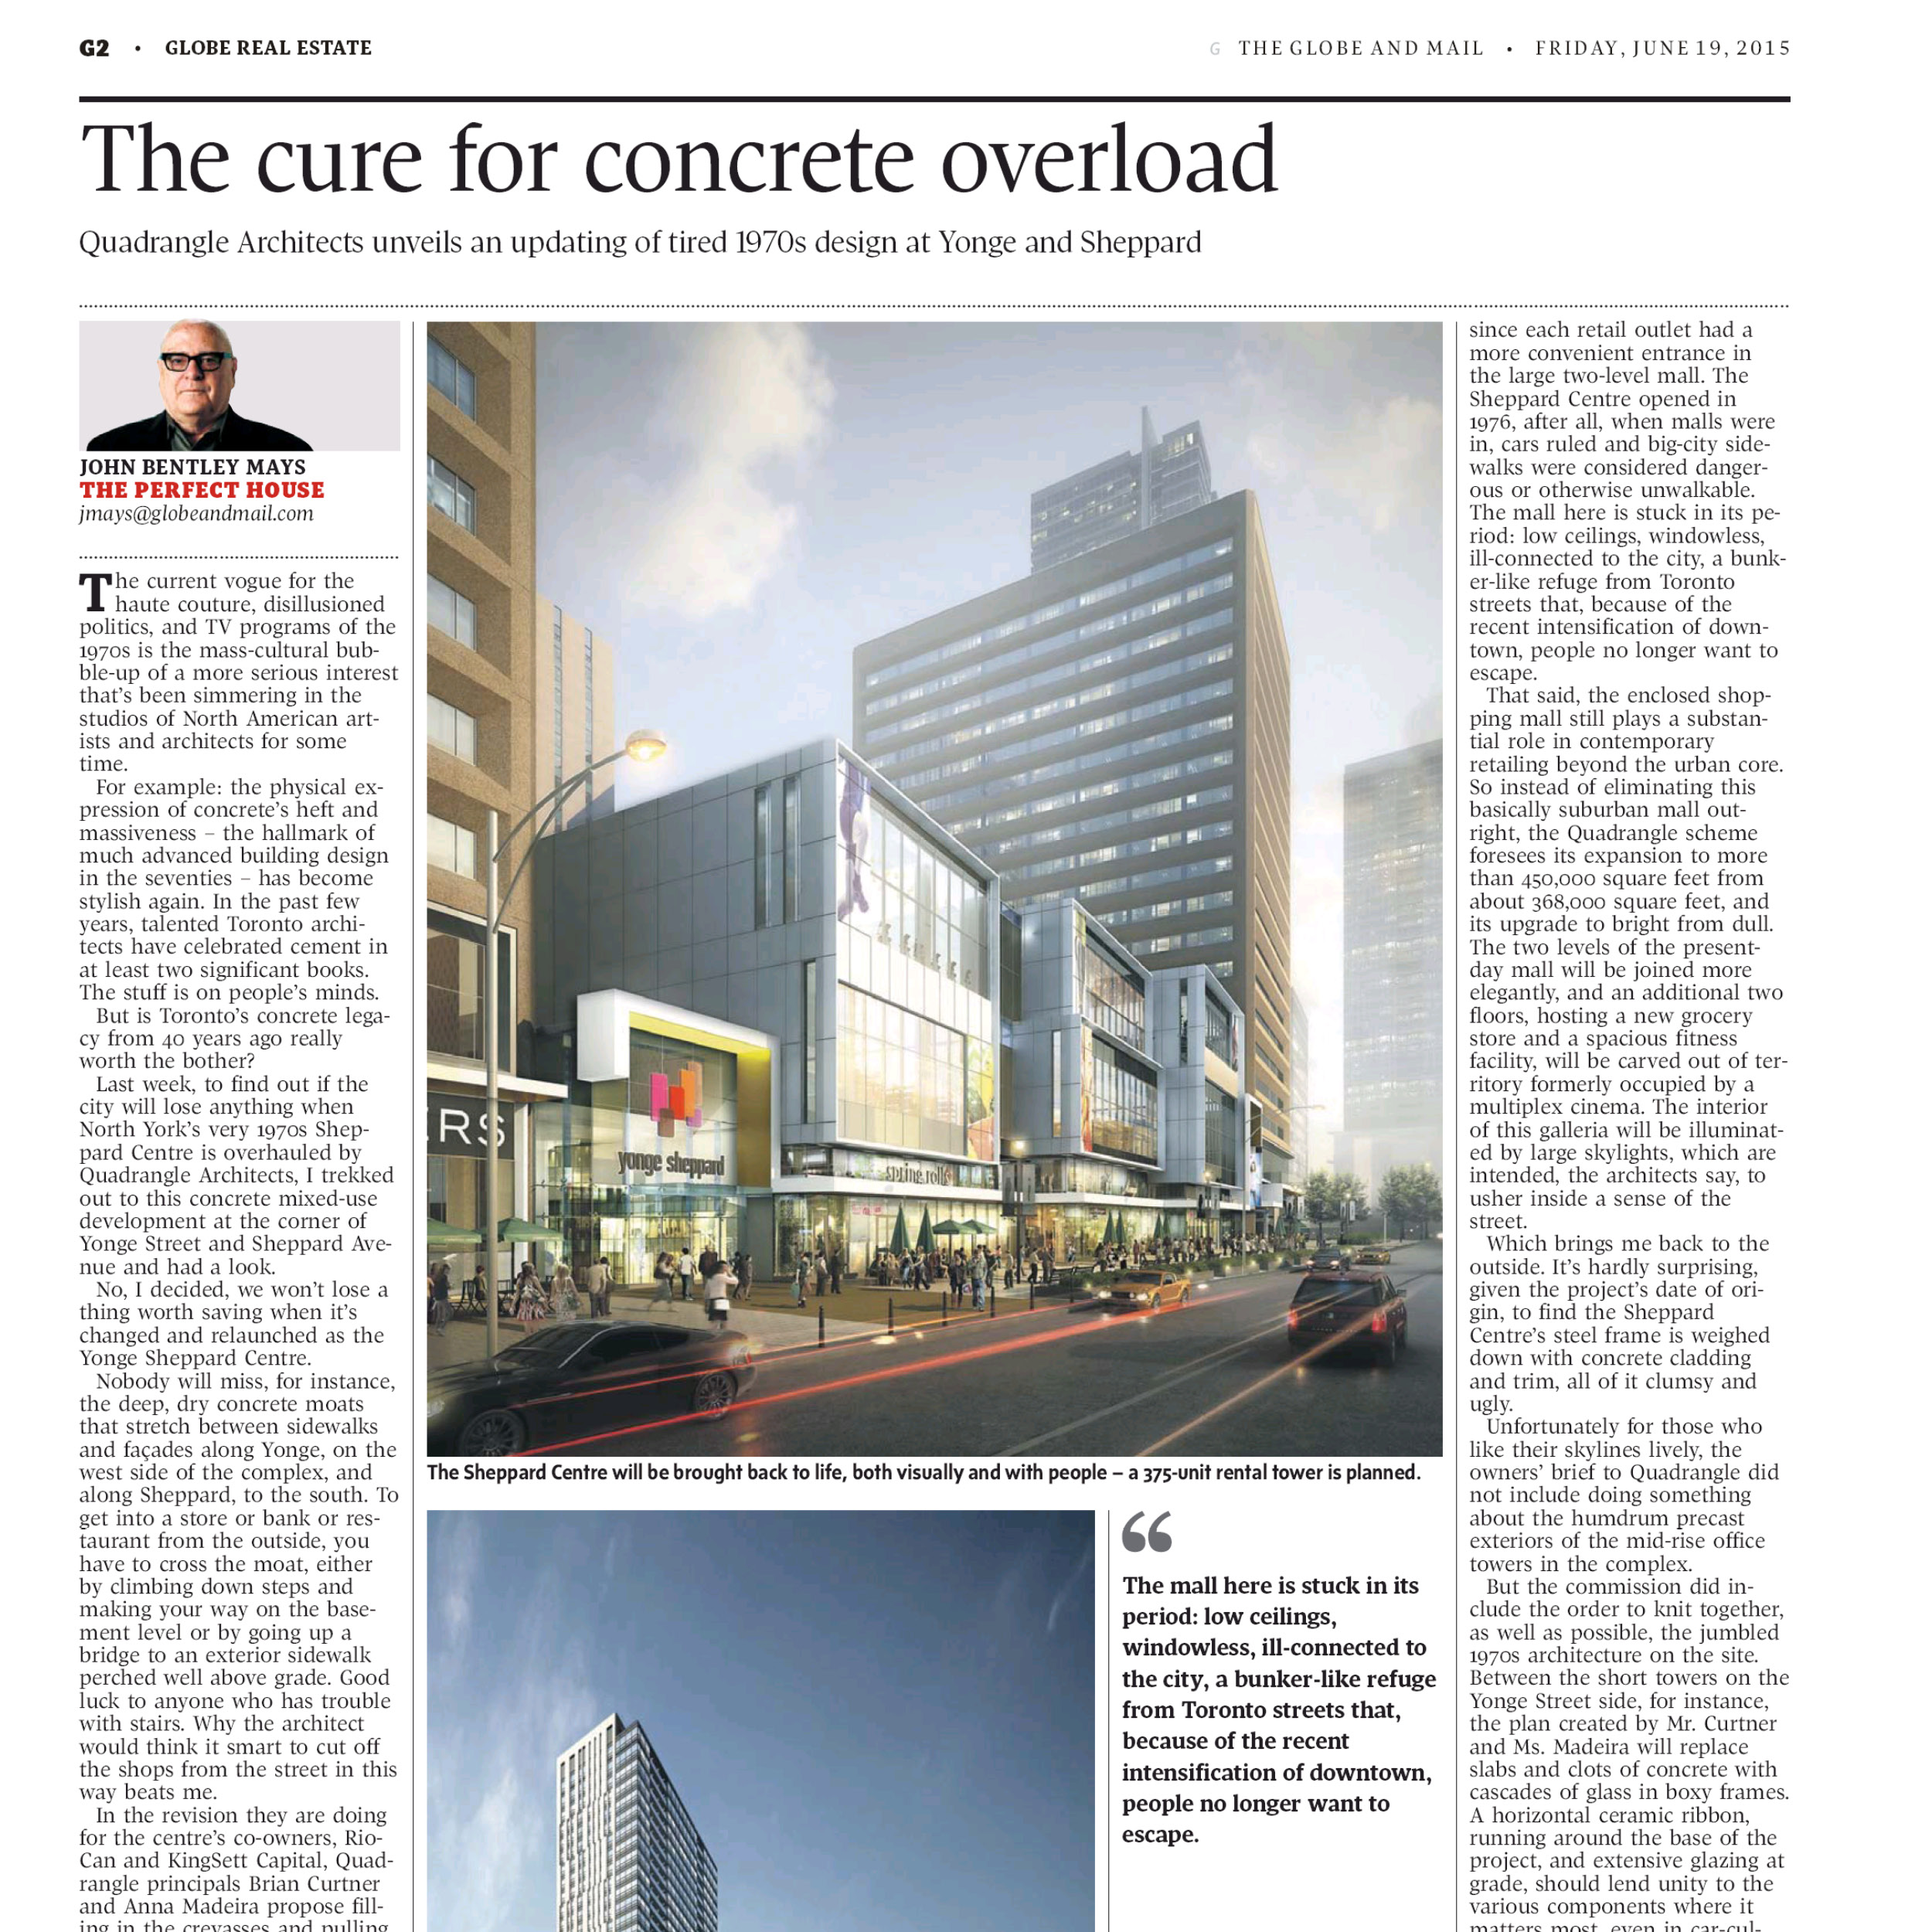 Globe and Mail newspaper article about Yonge Sheppard Centre